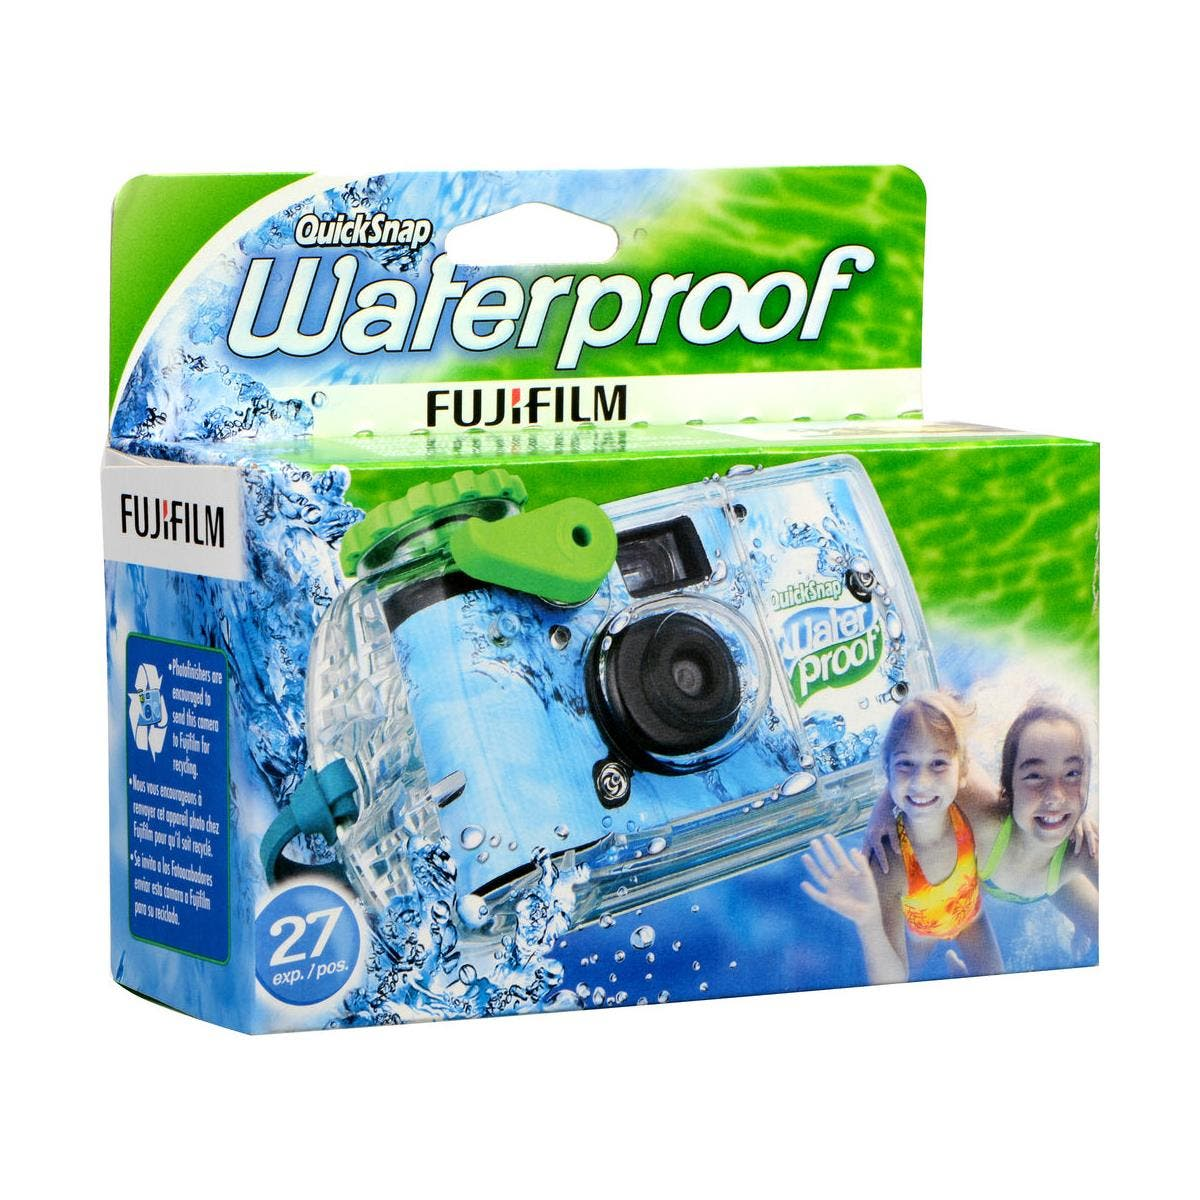 Get Excited! The Fujifilm QuickSnap Waterproof 800 35mm is Back!